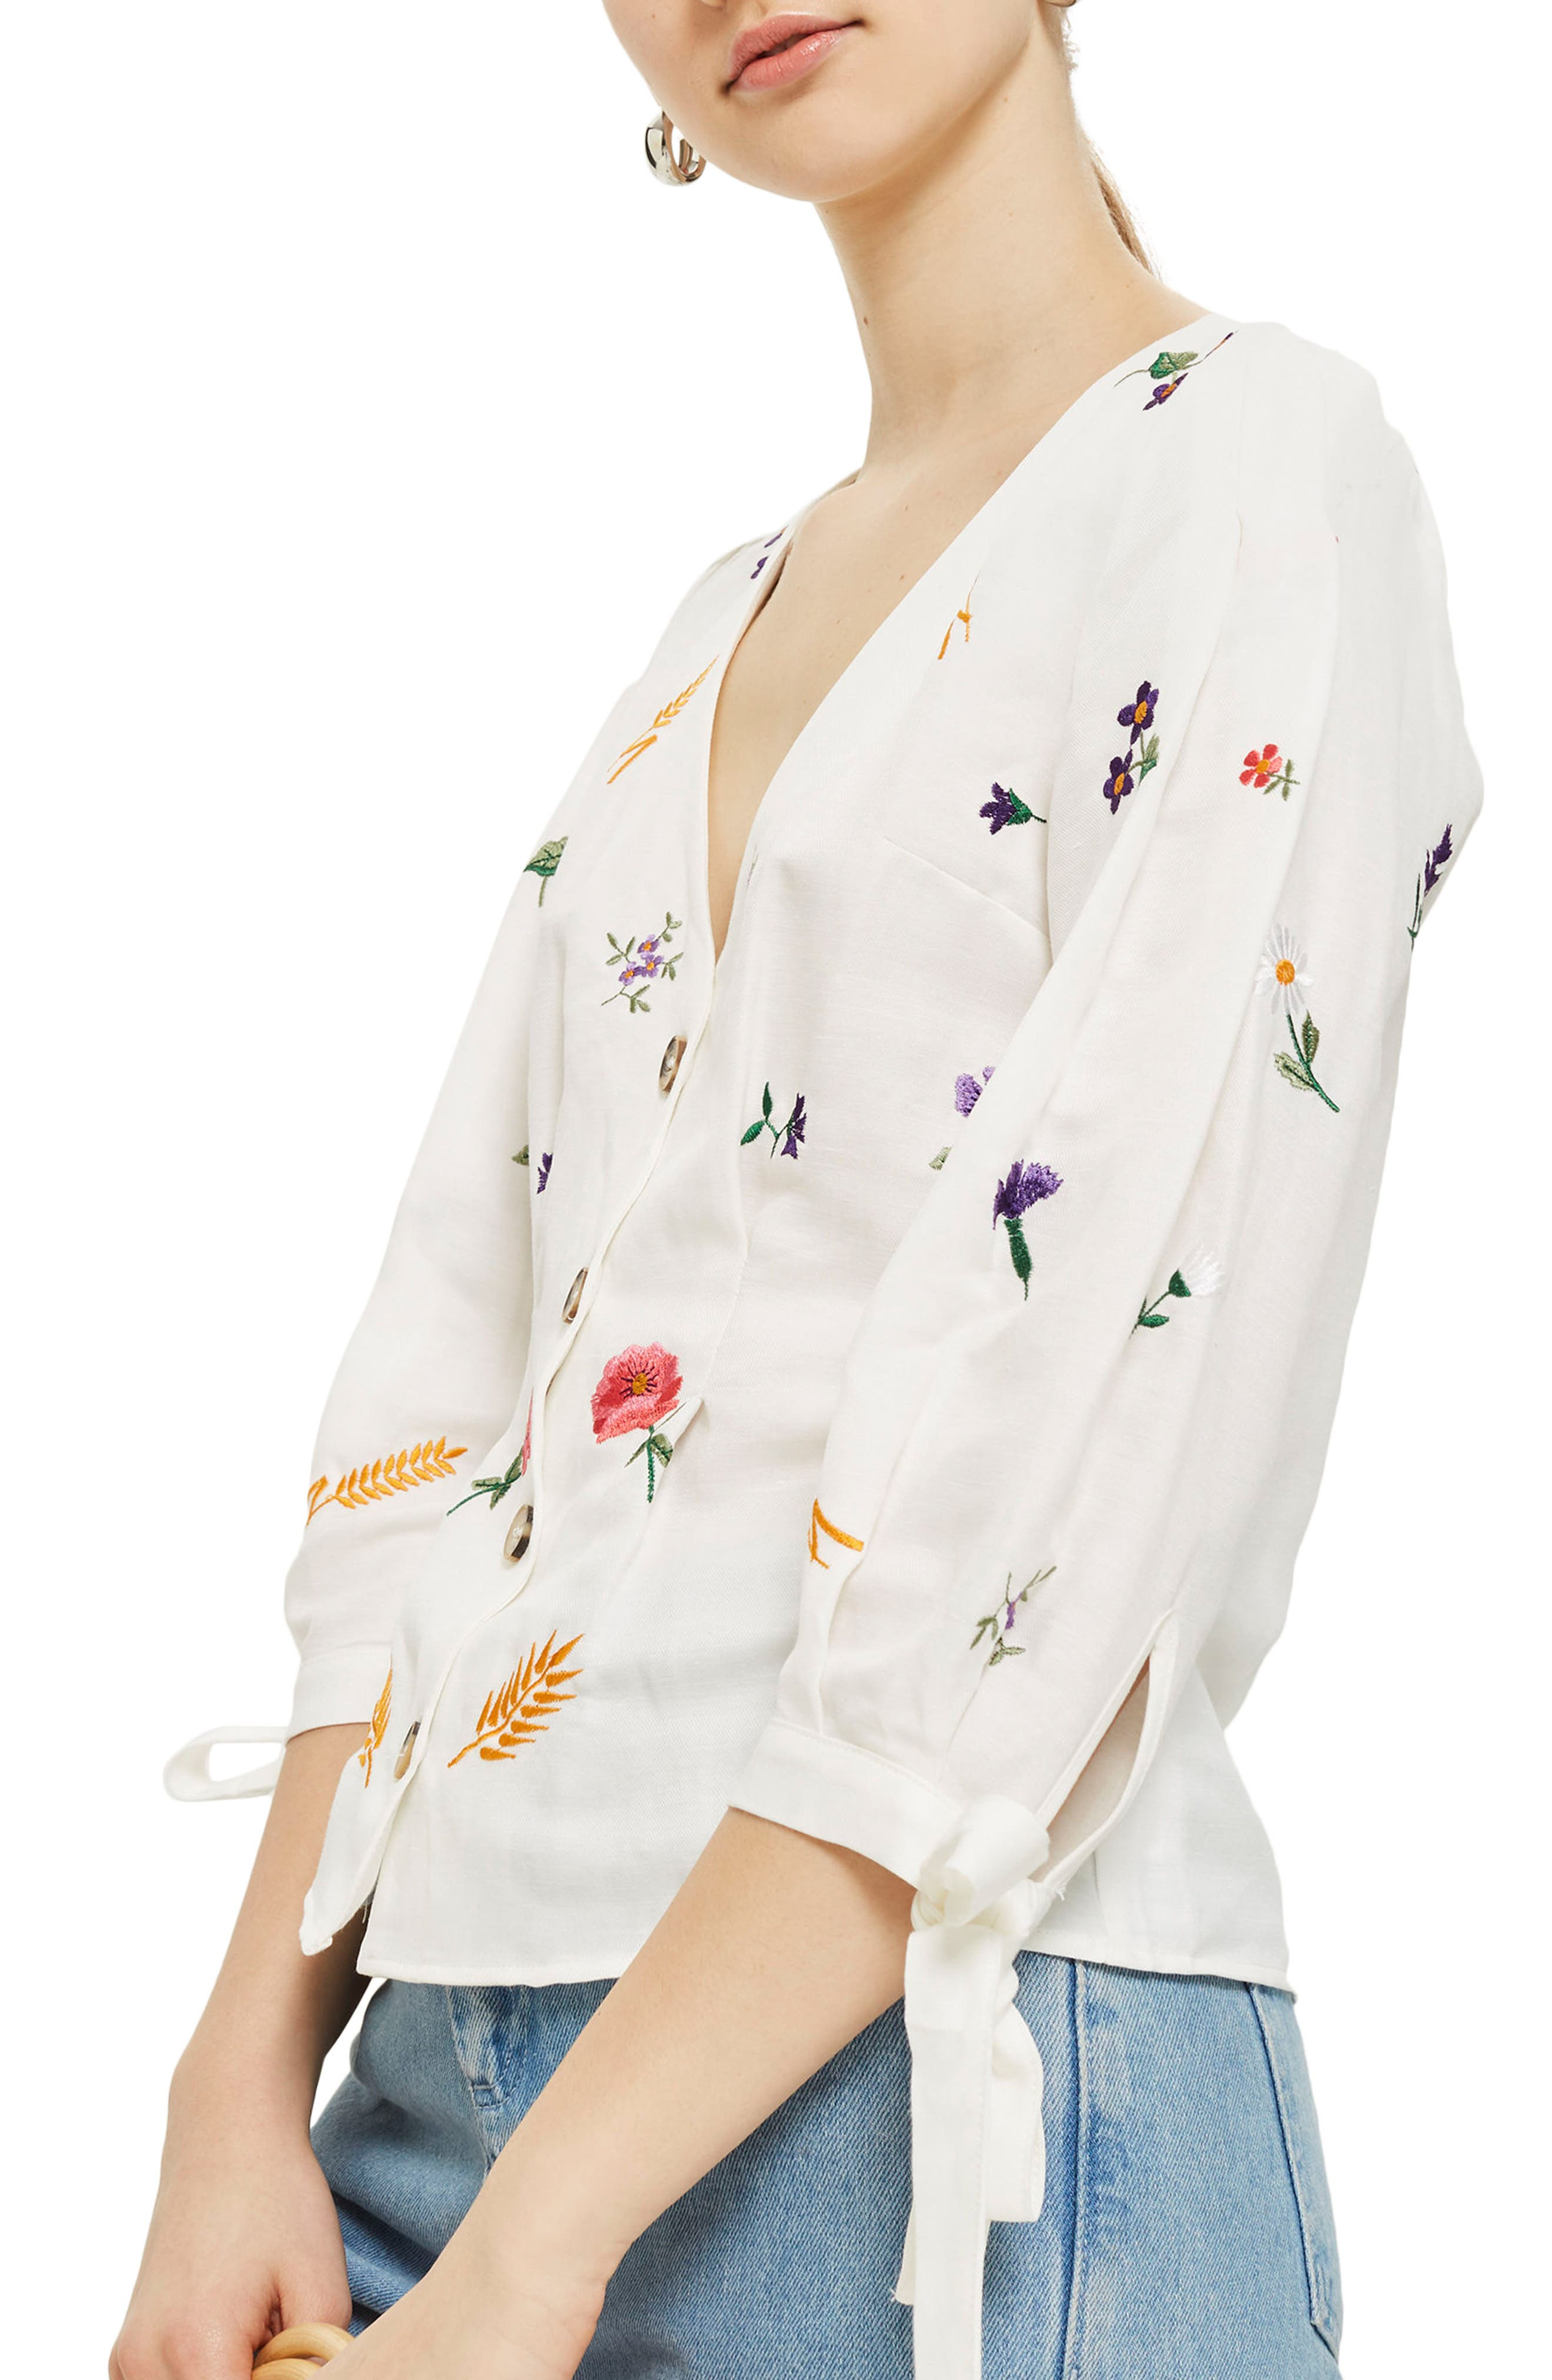 Field Embroidered Floral Blouse,                             Main thumbnail 1, color,                             900